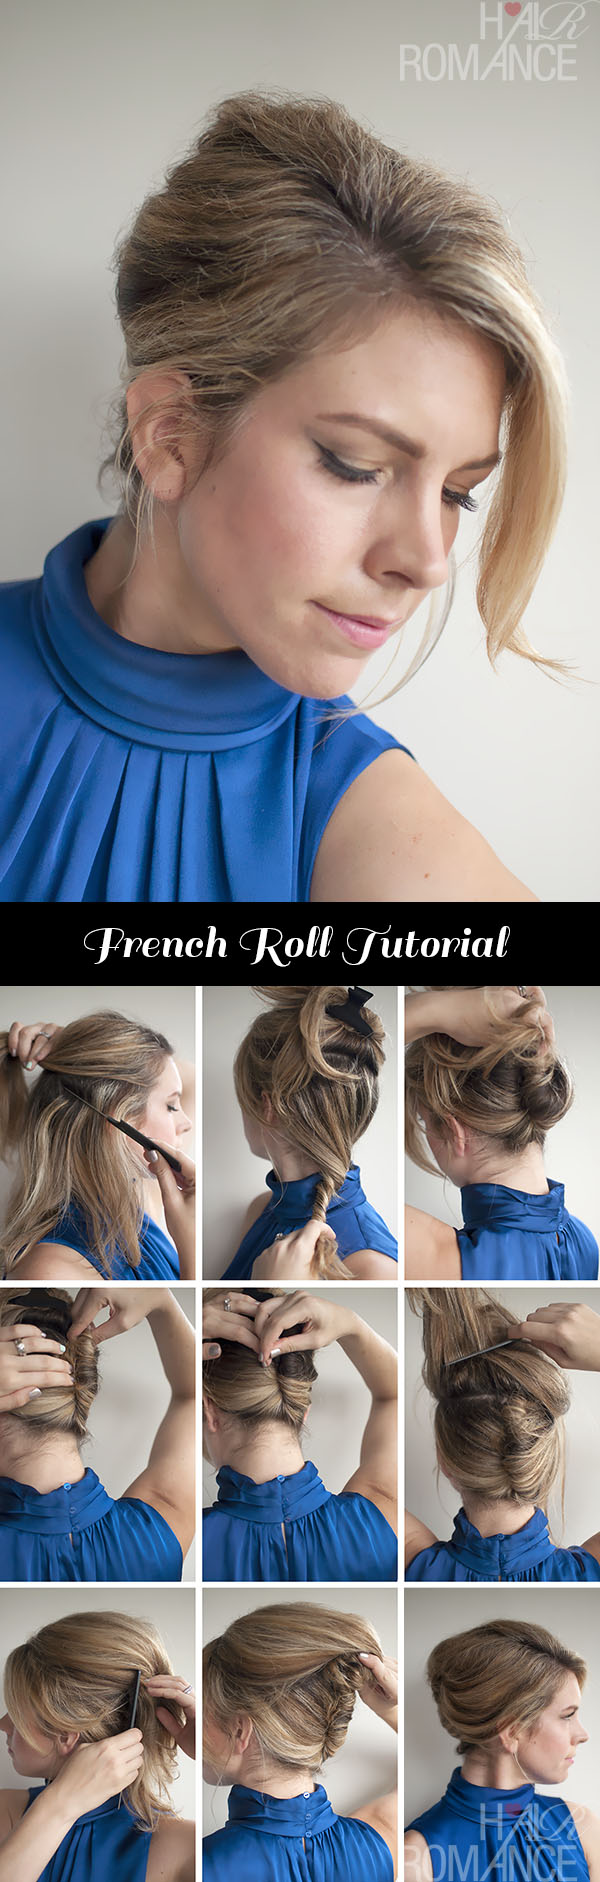 Vintage French Roll hairstyle tutorial - @HairRomance